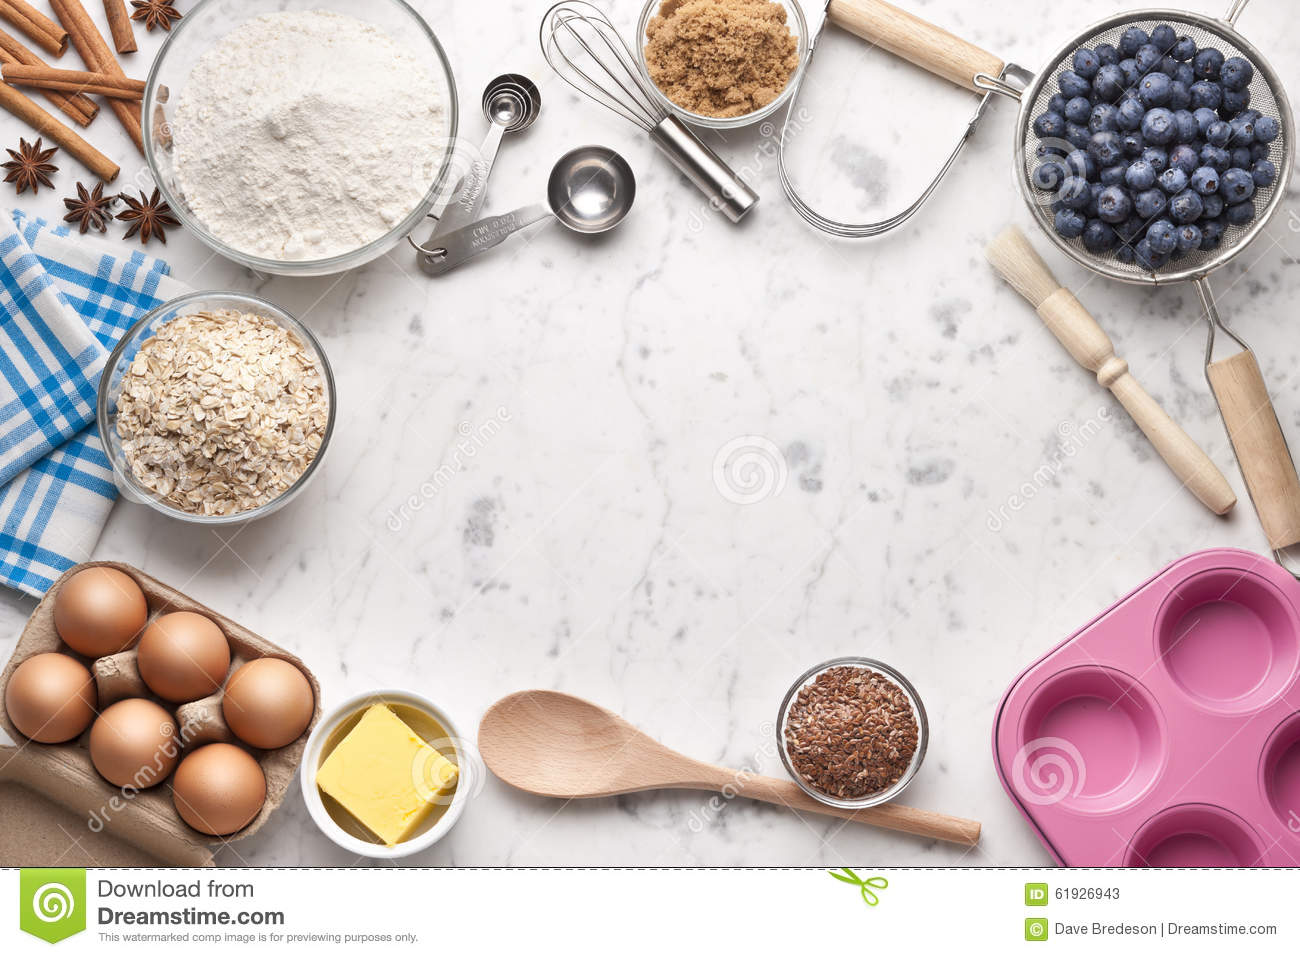 baking-cooking-white-background-various-food-ingredients-utensils-marble-61926943.jpg